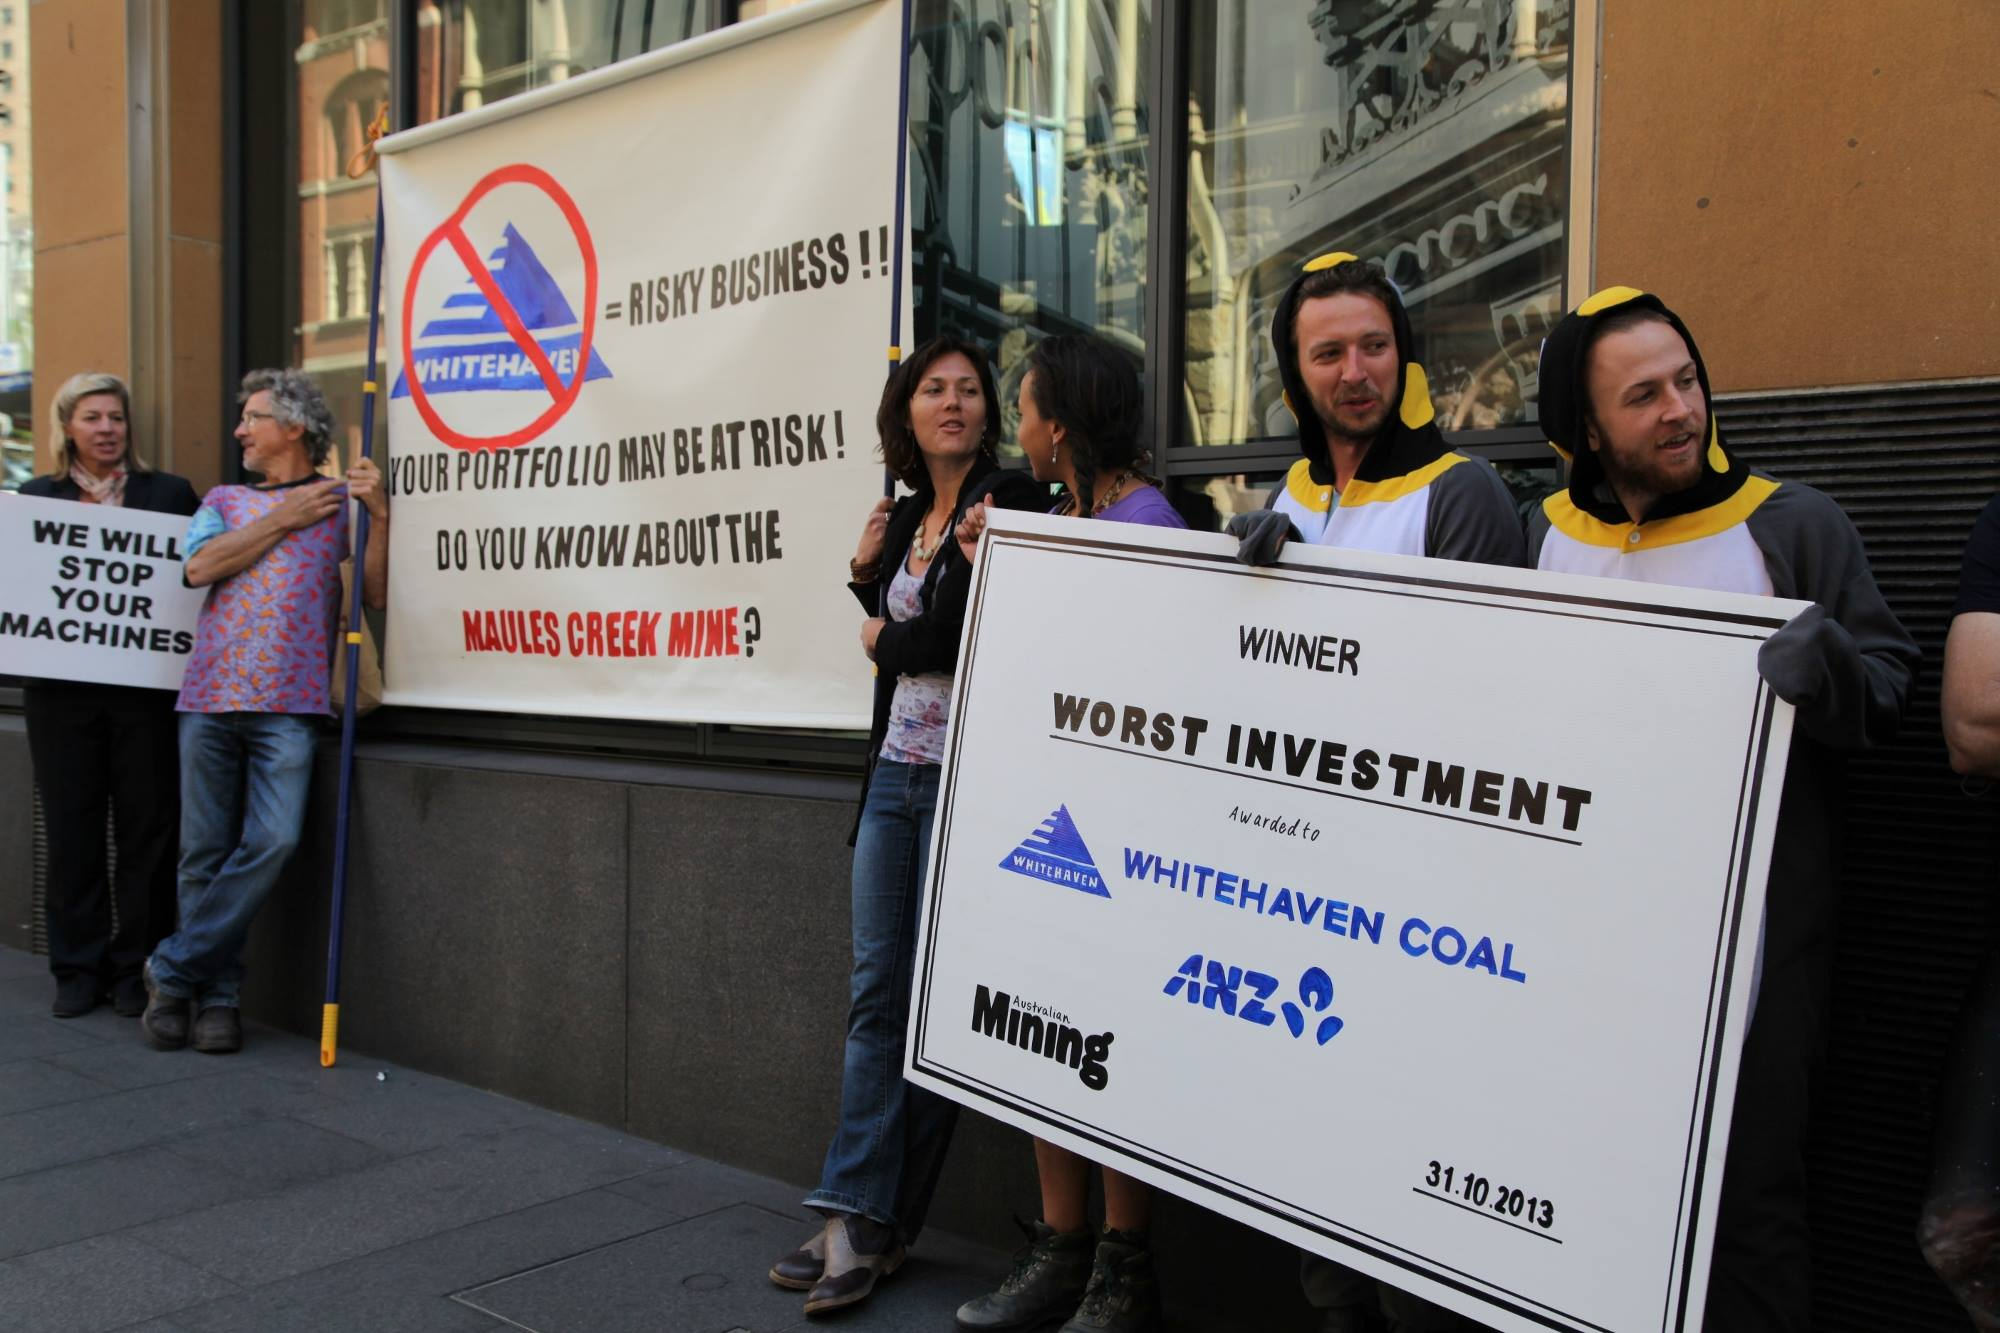 whitehaven-coal-worst-investment.jpg